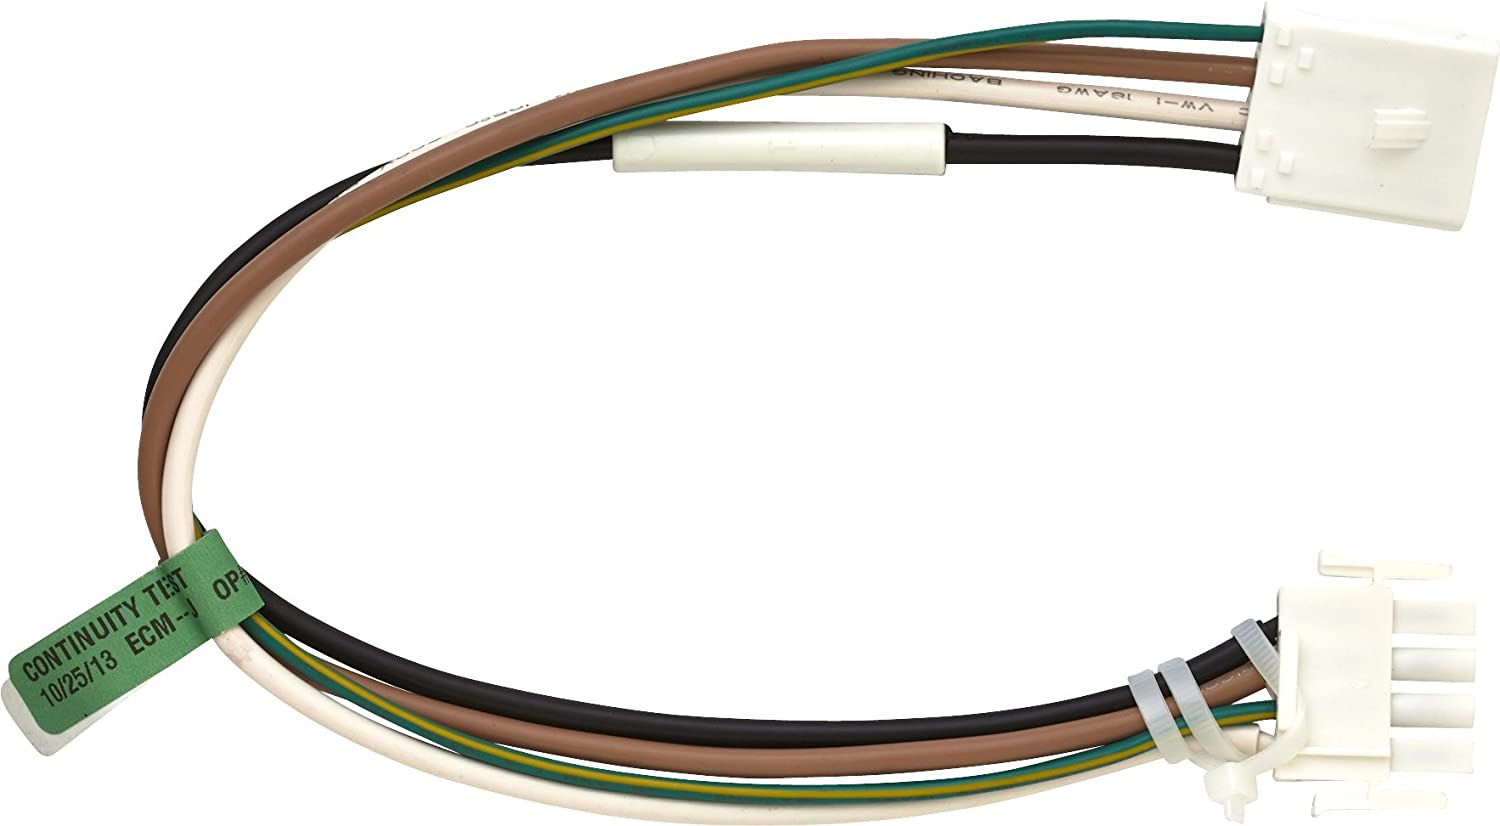 6113euQ4aCL._SL1500_ amazon com whirlpool d7813010 harness icemaker home improvement ice maker wiring harness maytag at mr168.co